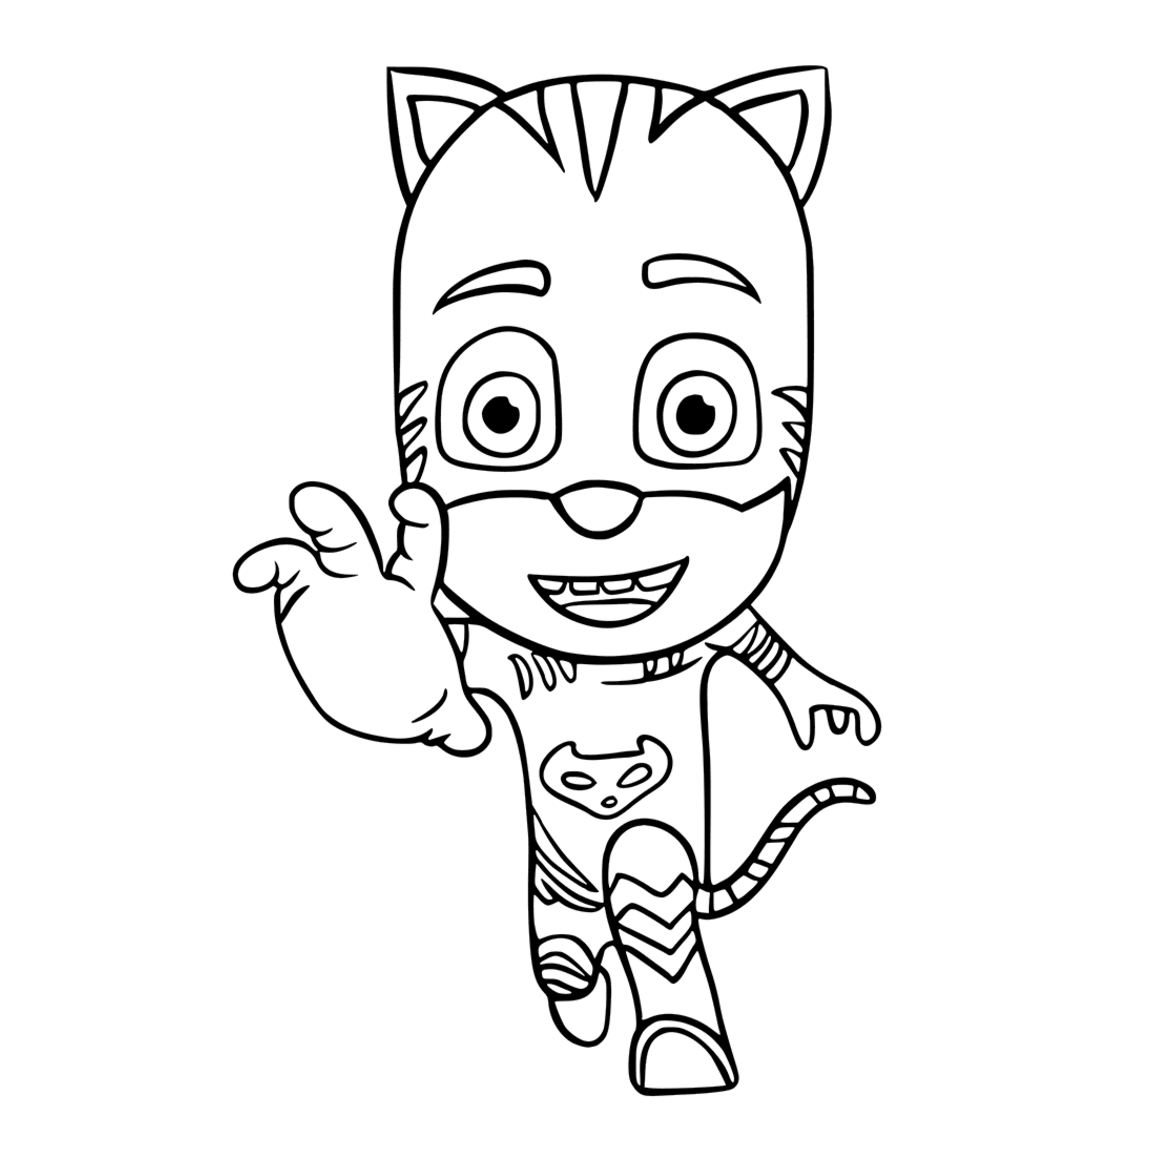 Pj masks coloring pages best coloring pages for kids for Coloring pages toddler